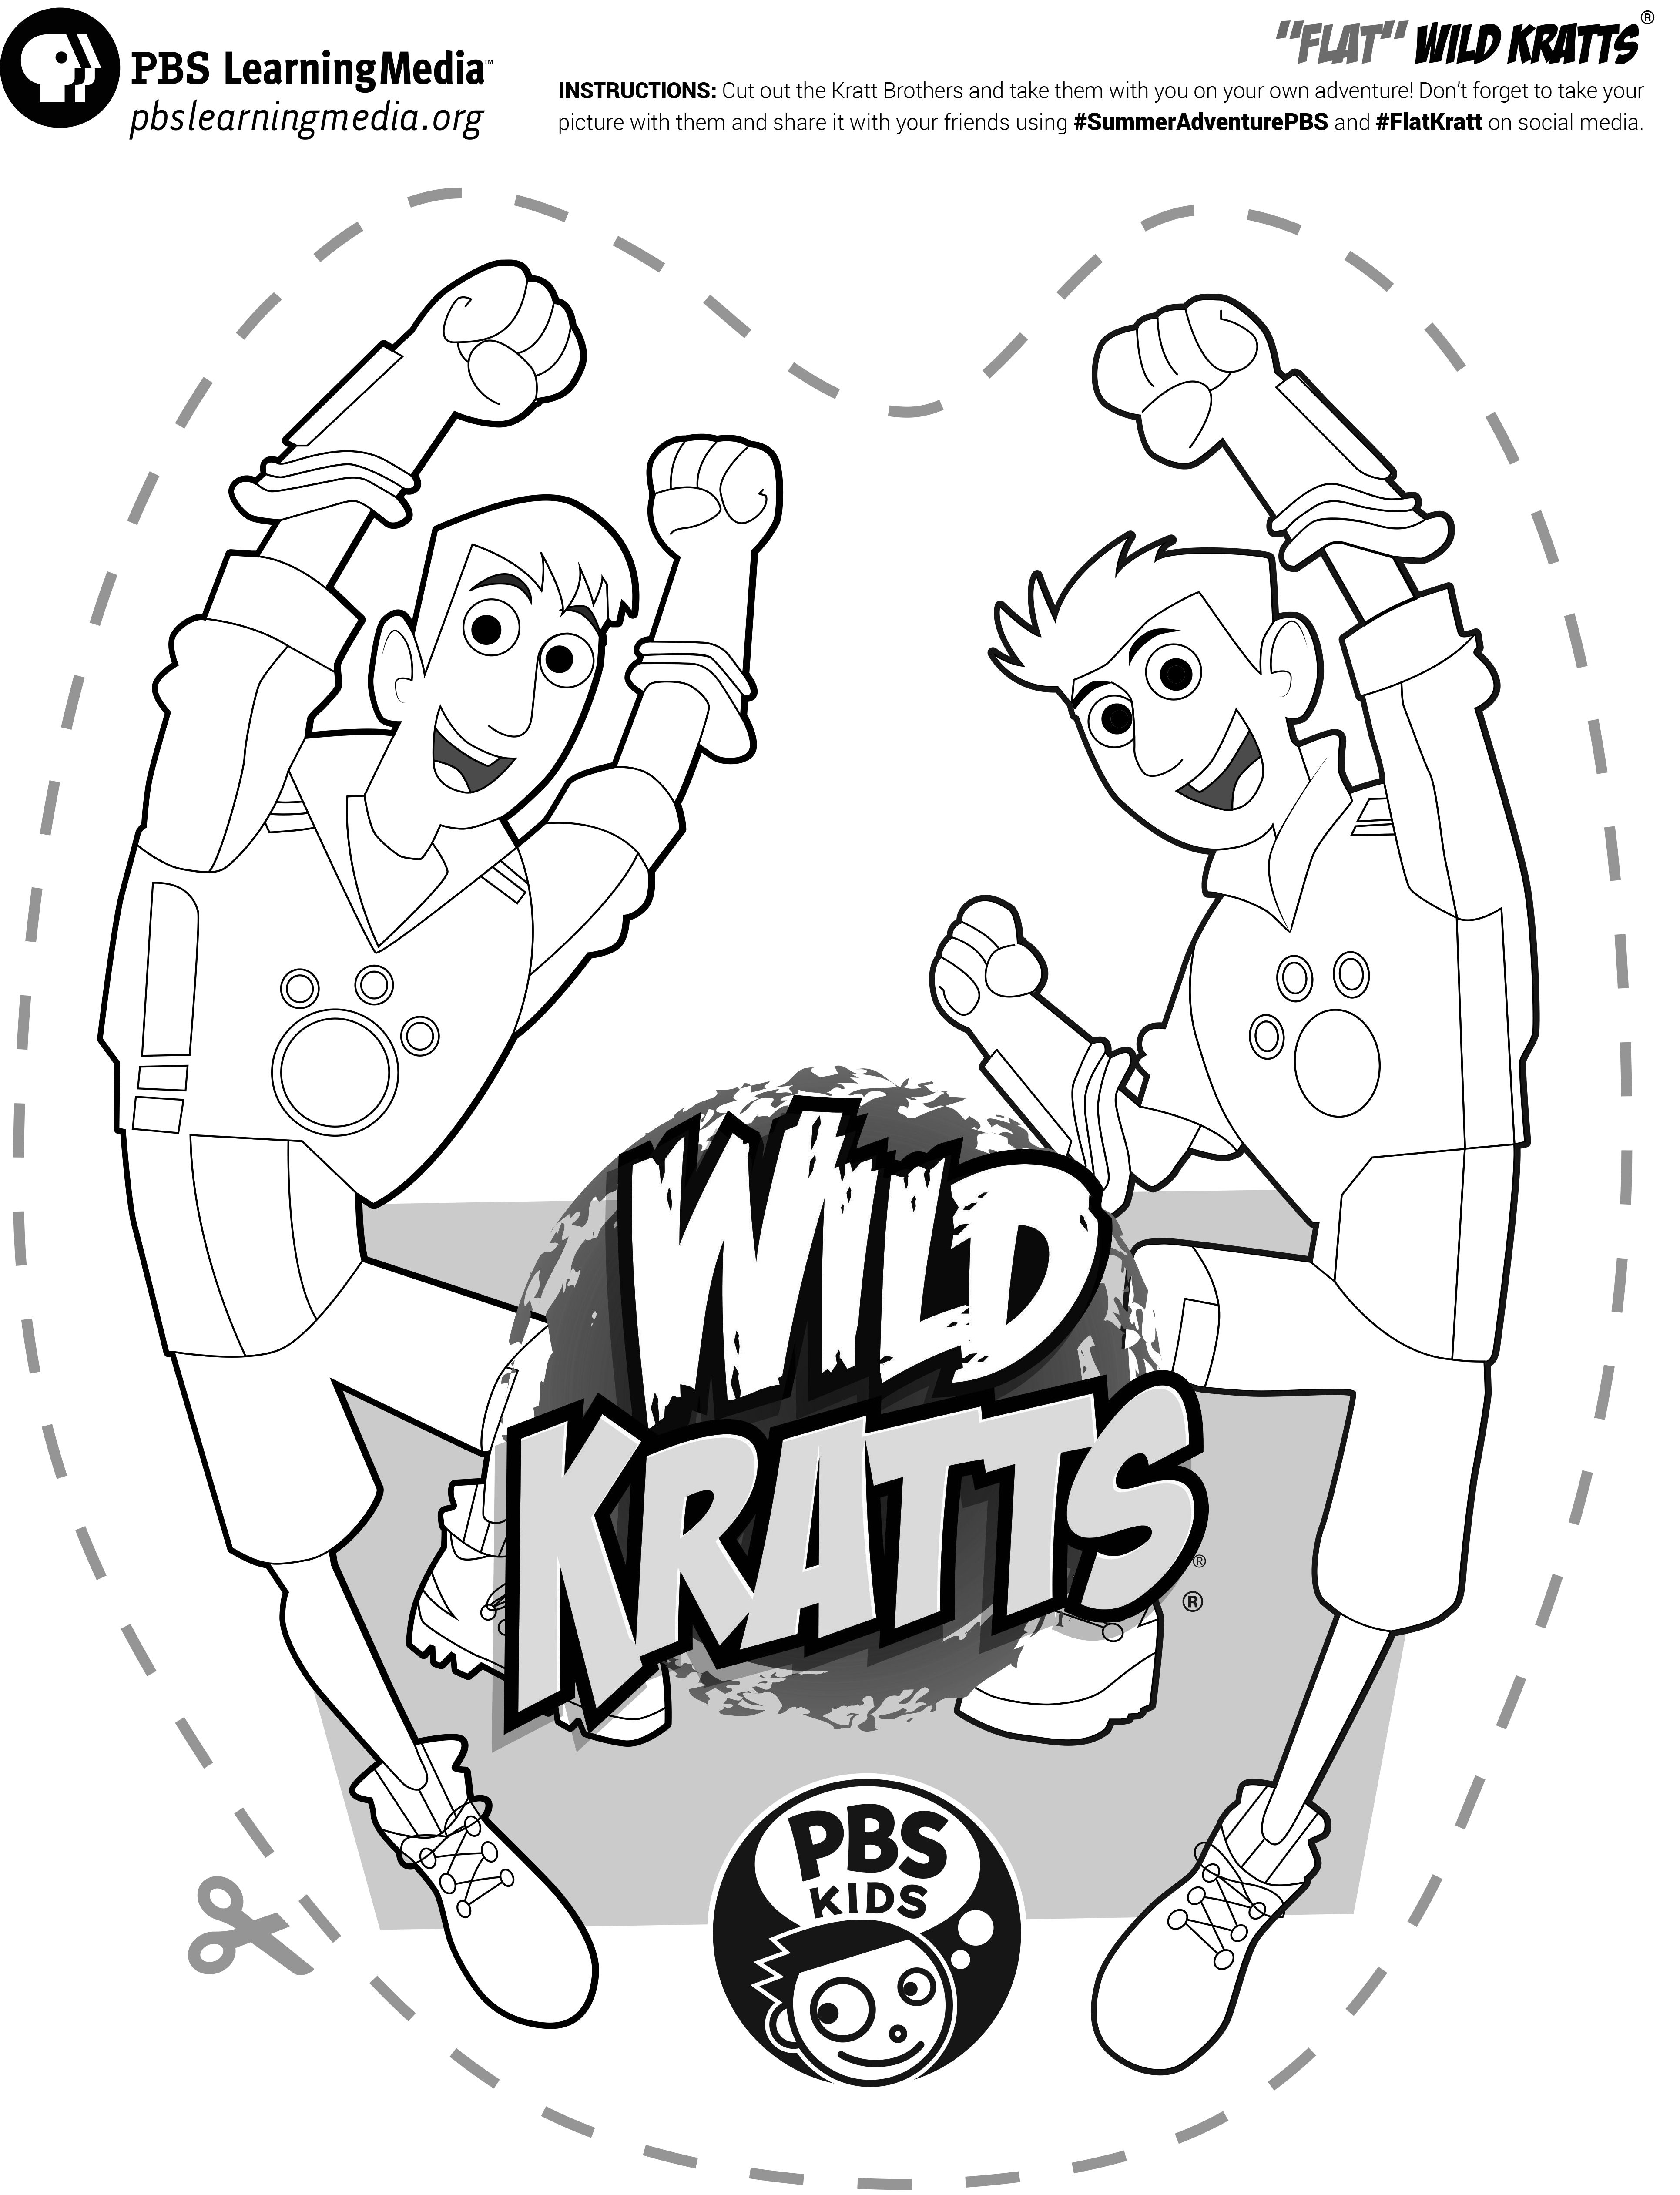 Take The Wild Kratts With You Wherever You Go With The